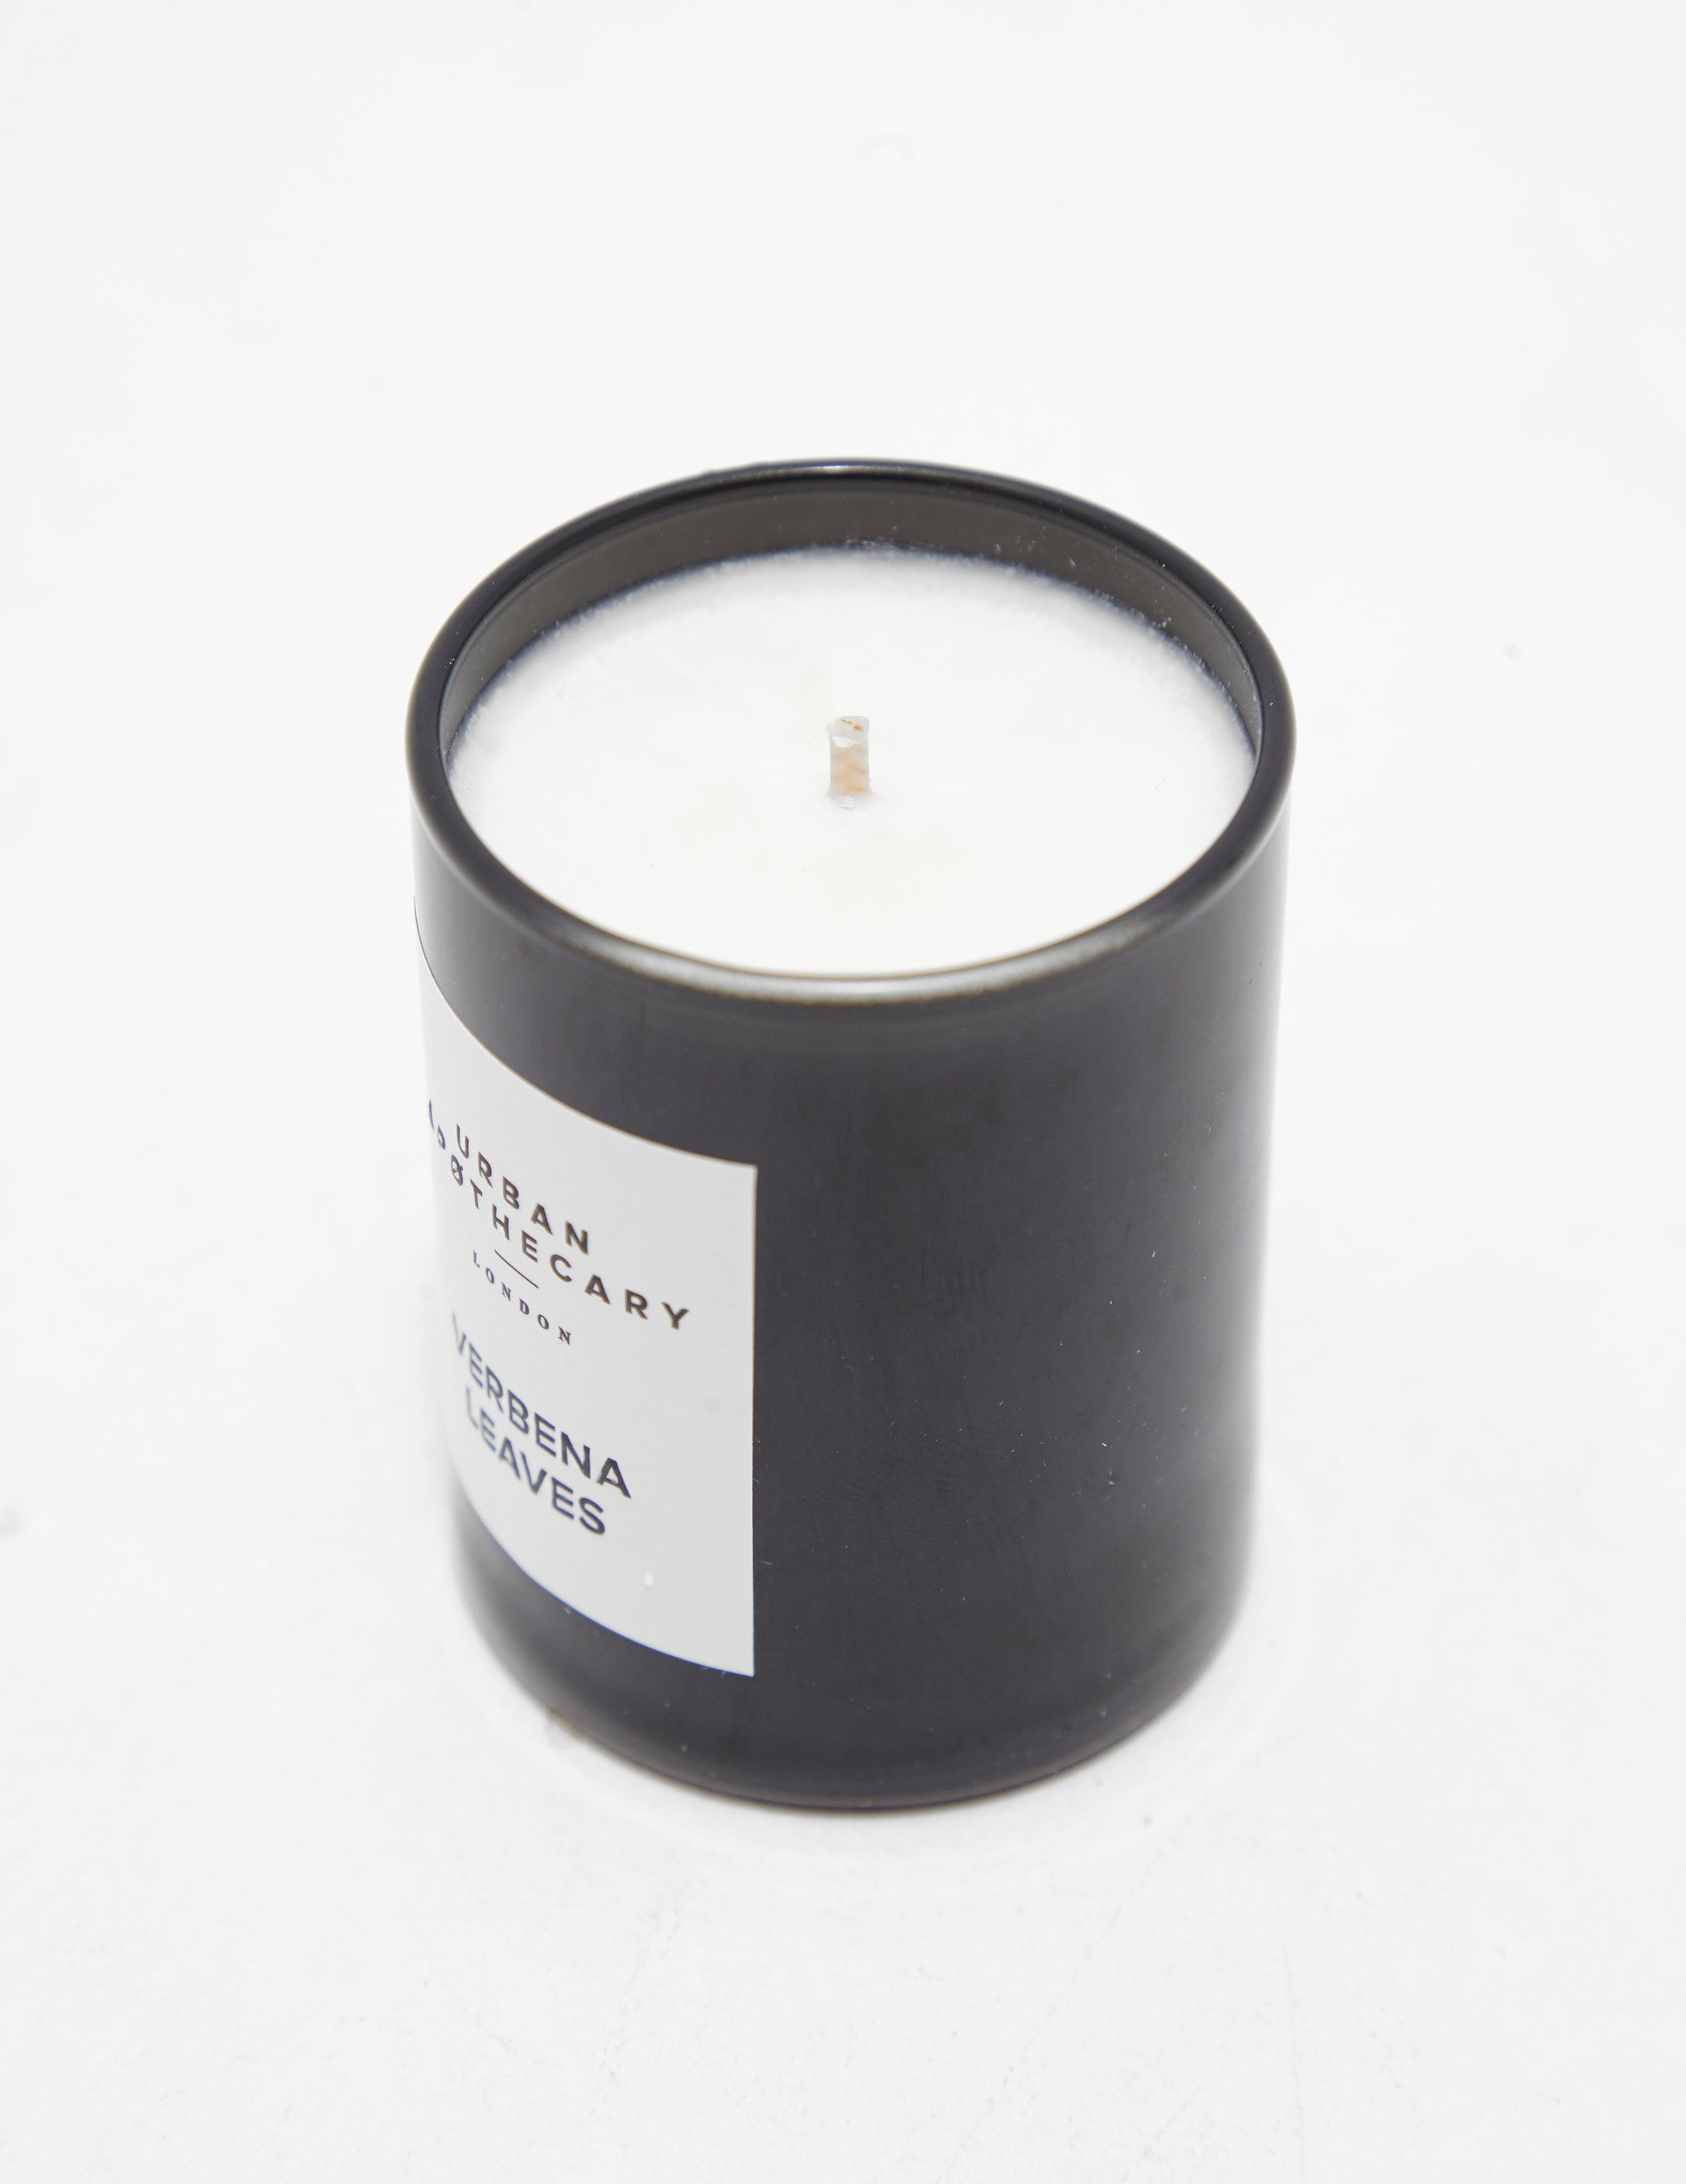 Urban Apothecary Verbena Leaves Candle